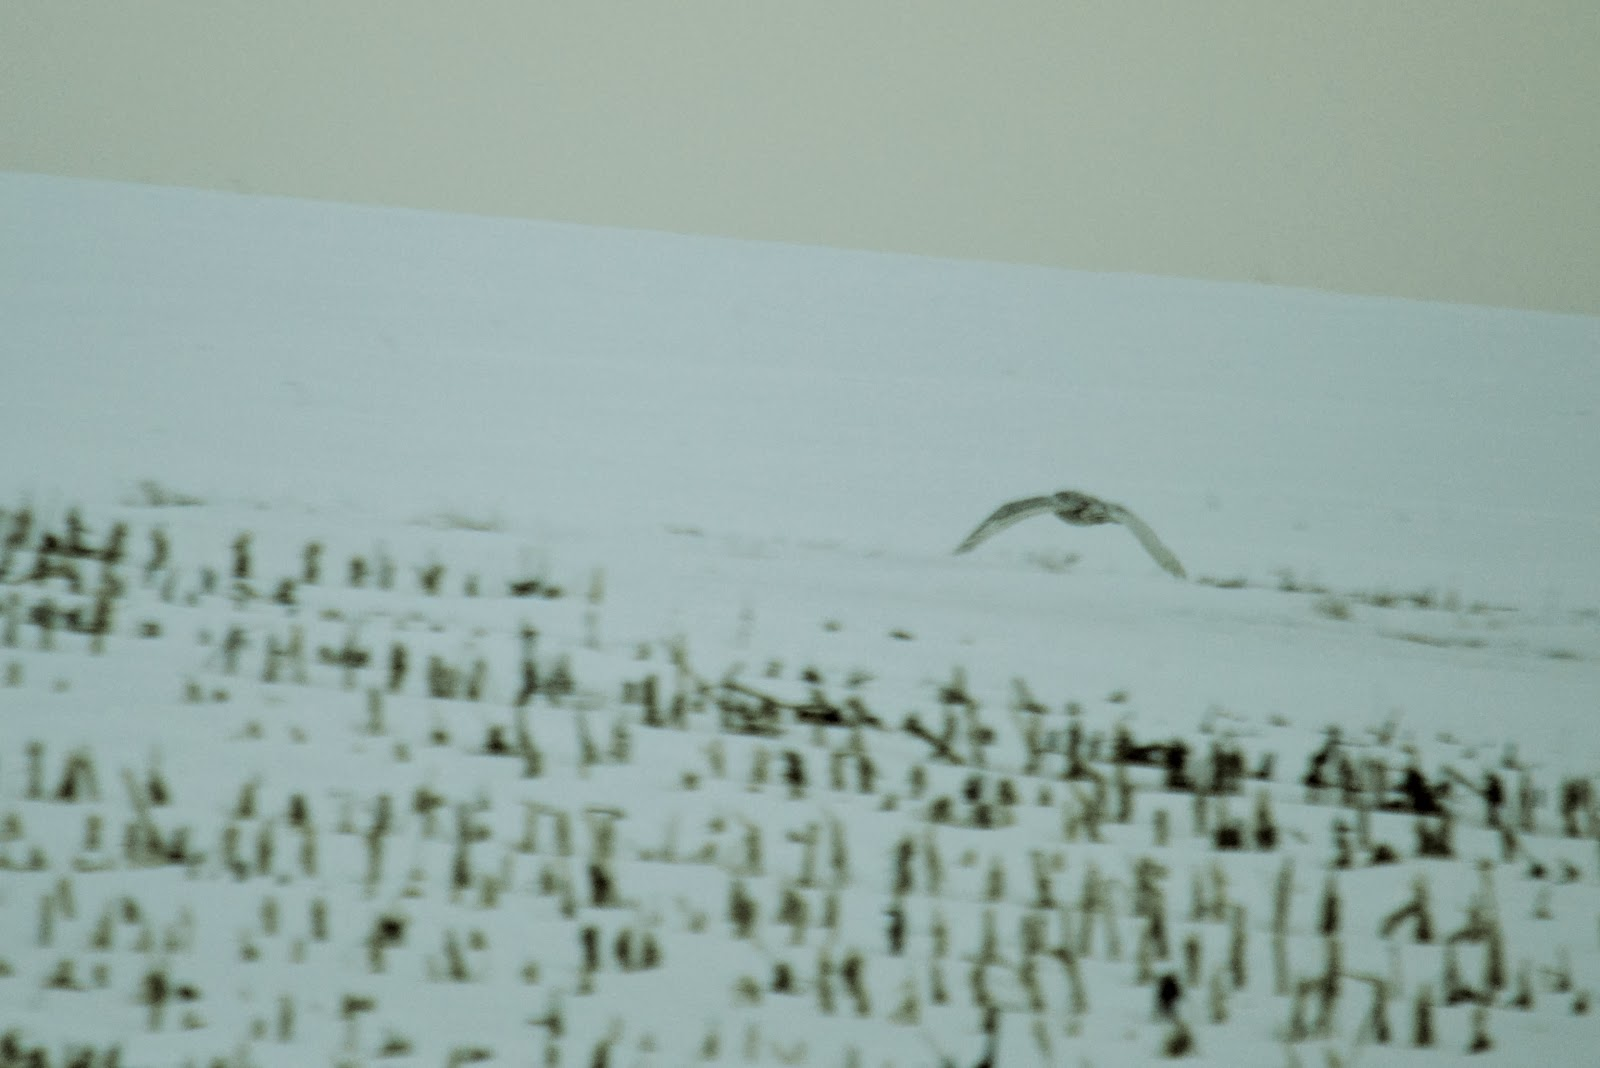 snowy owl flying across a snow-covered field